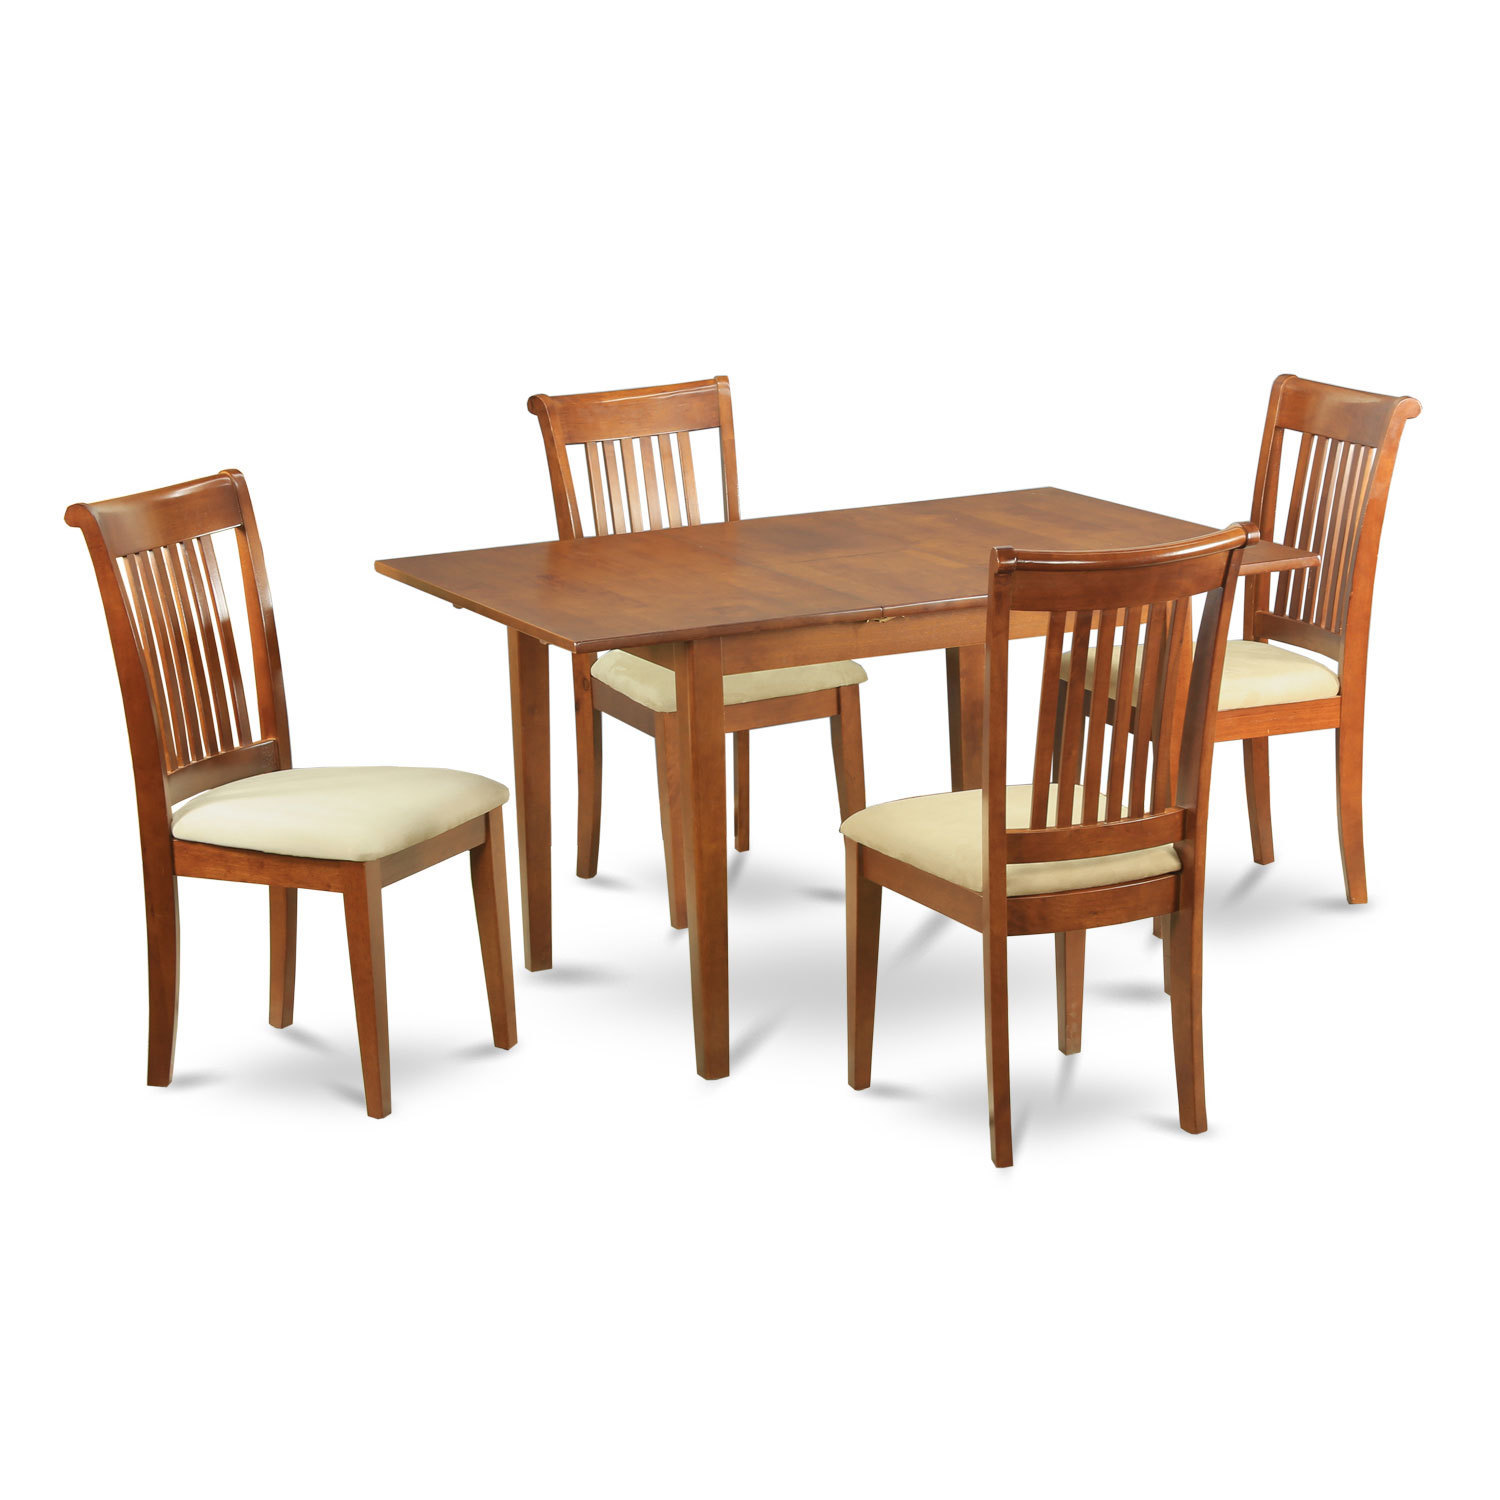 Small dinette set design homesfeed for Small square dining room table